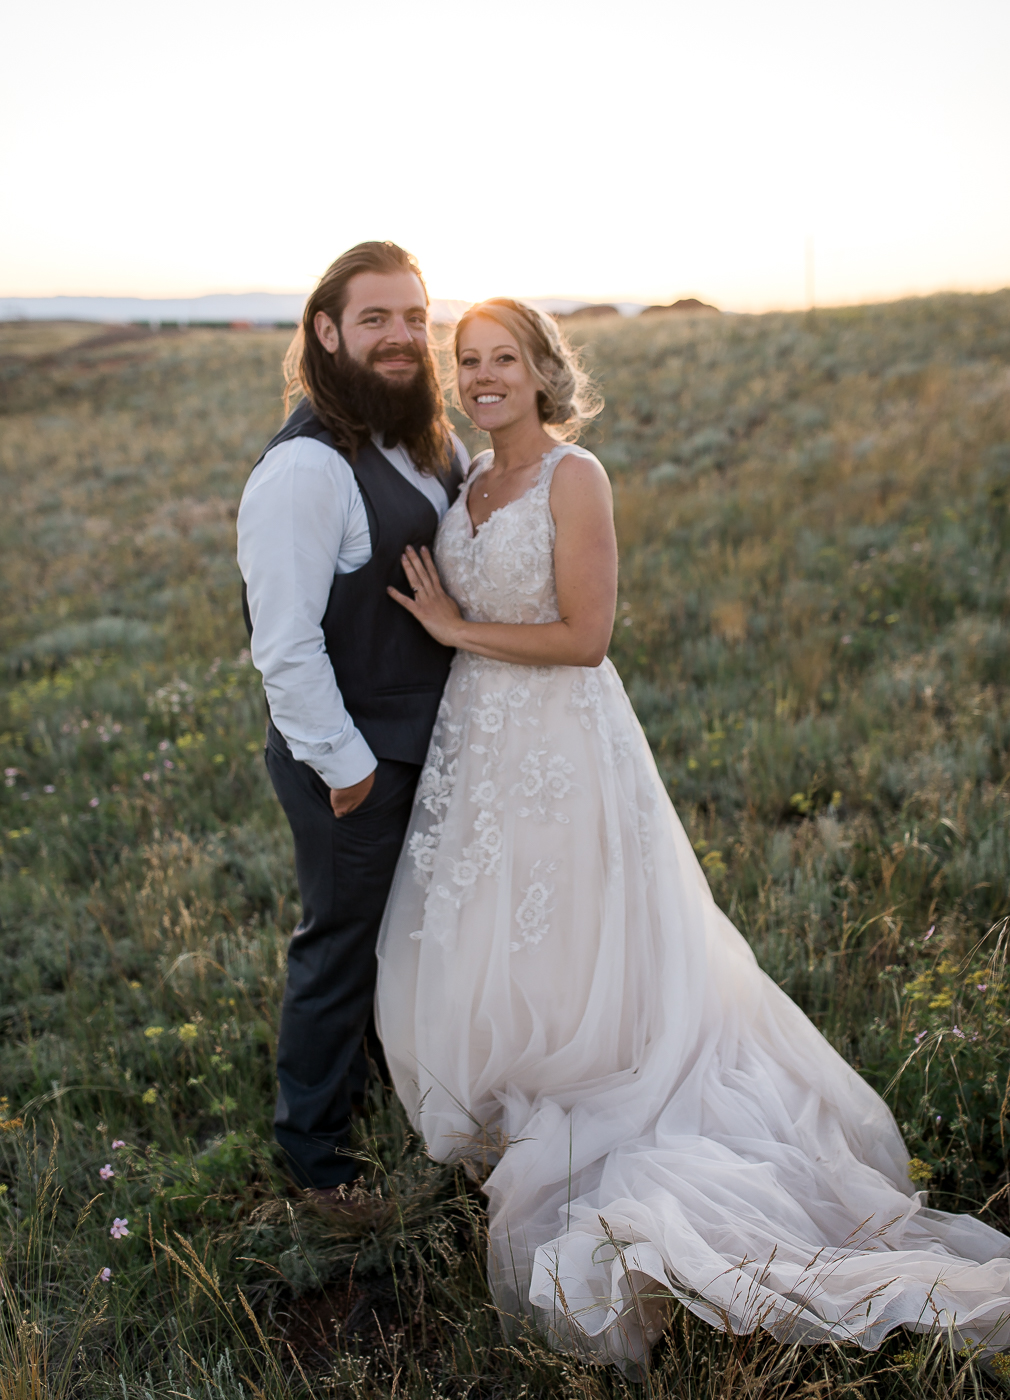 Summer Wyoming Wedding by Megan Lee Photography